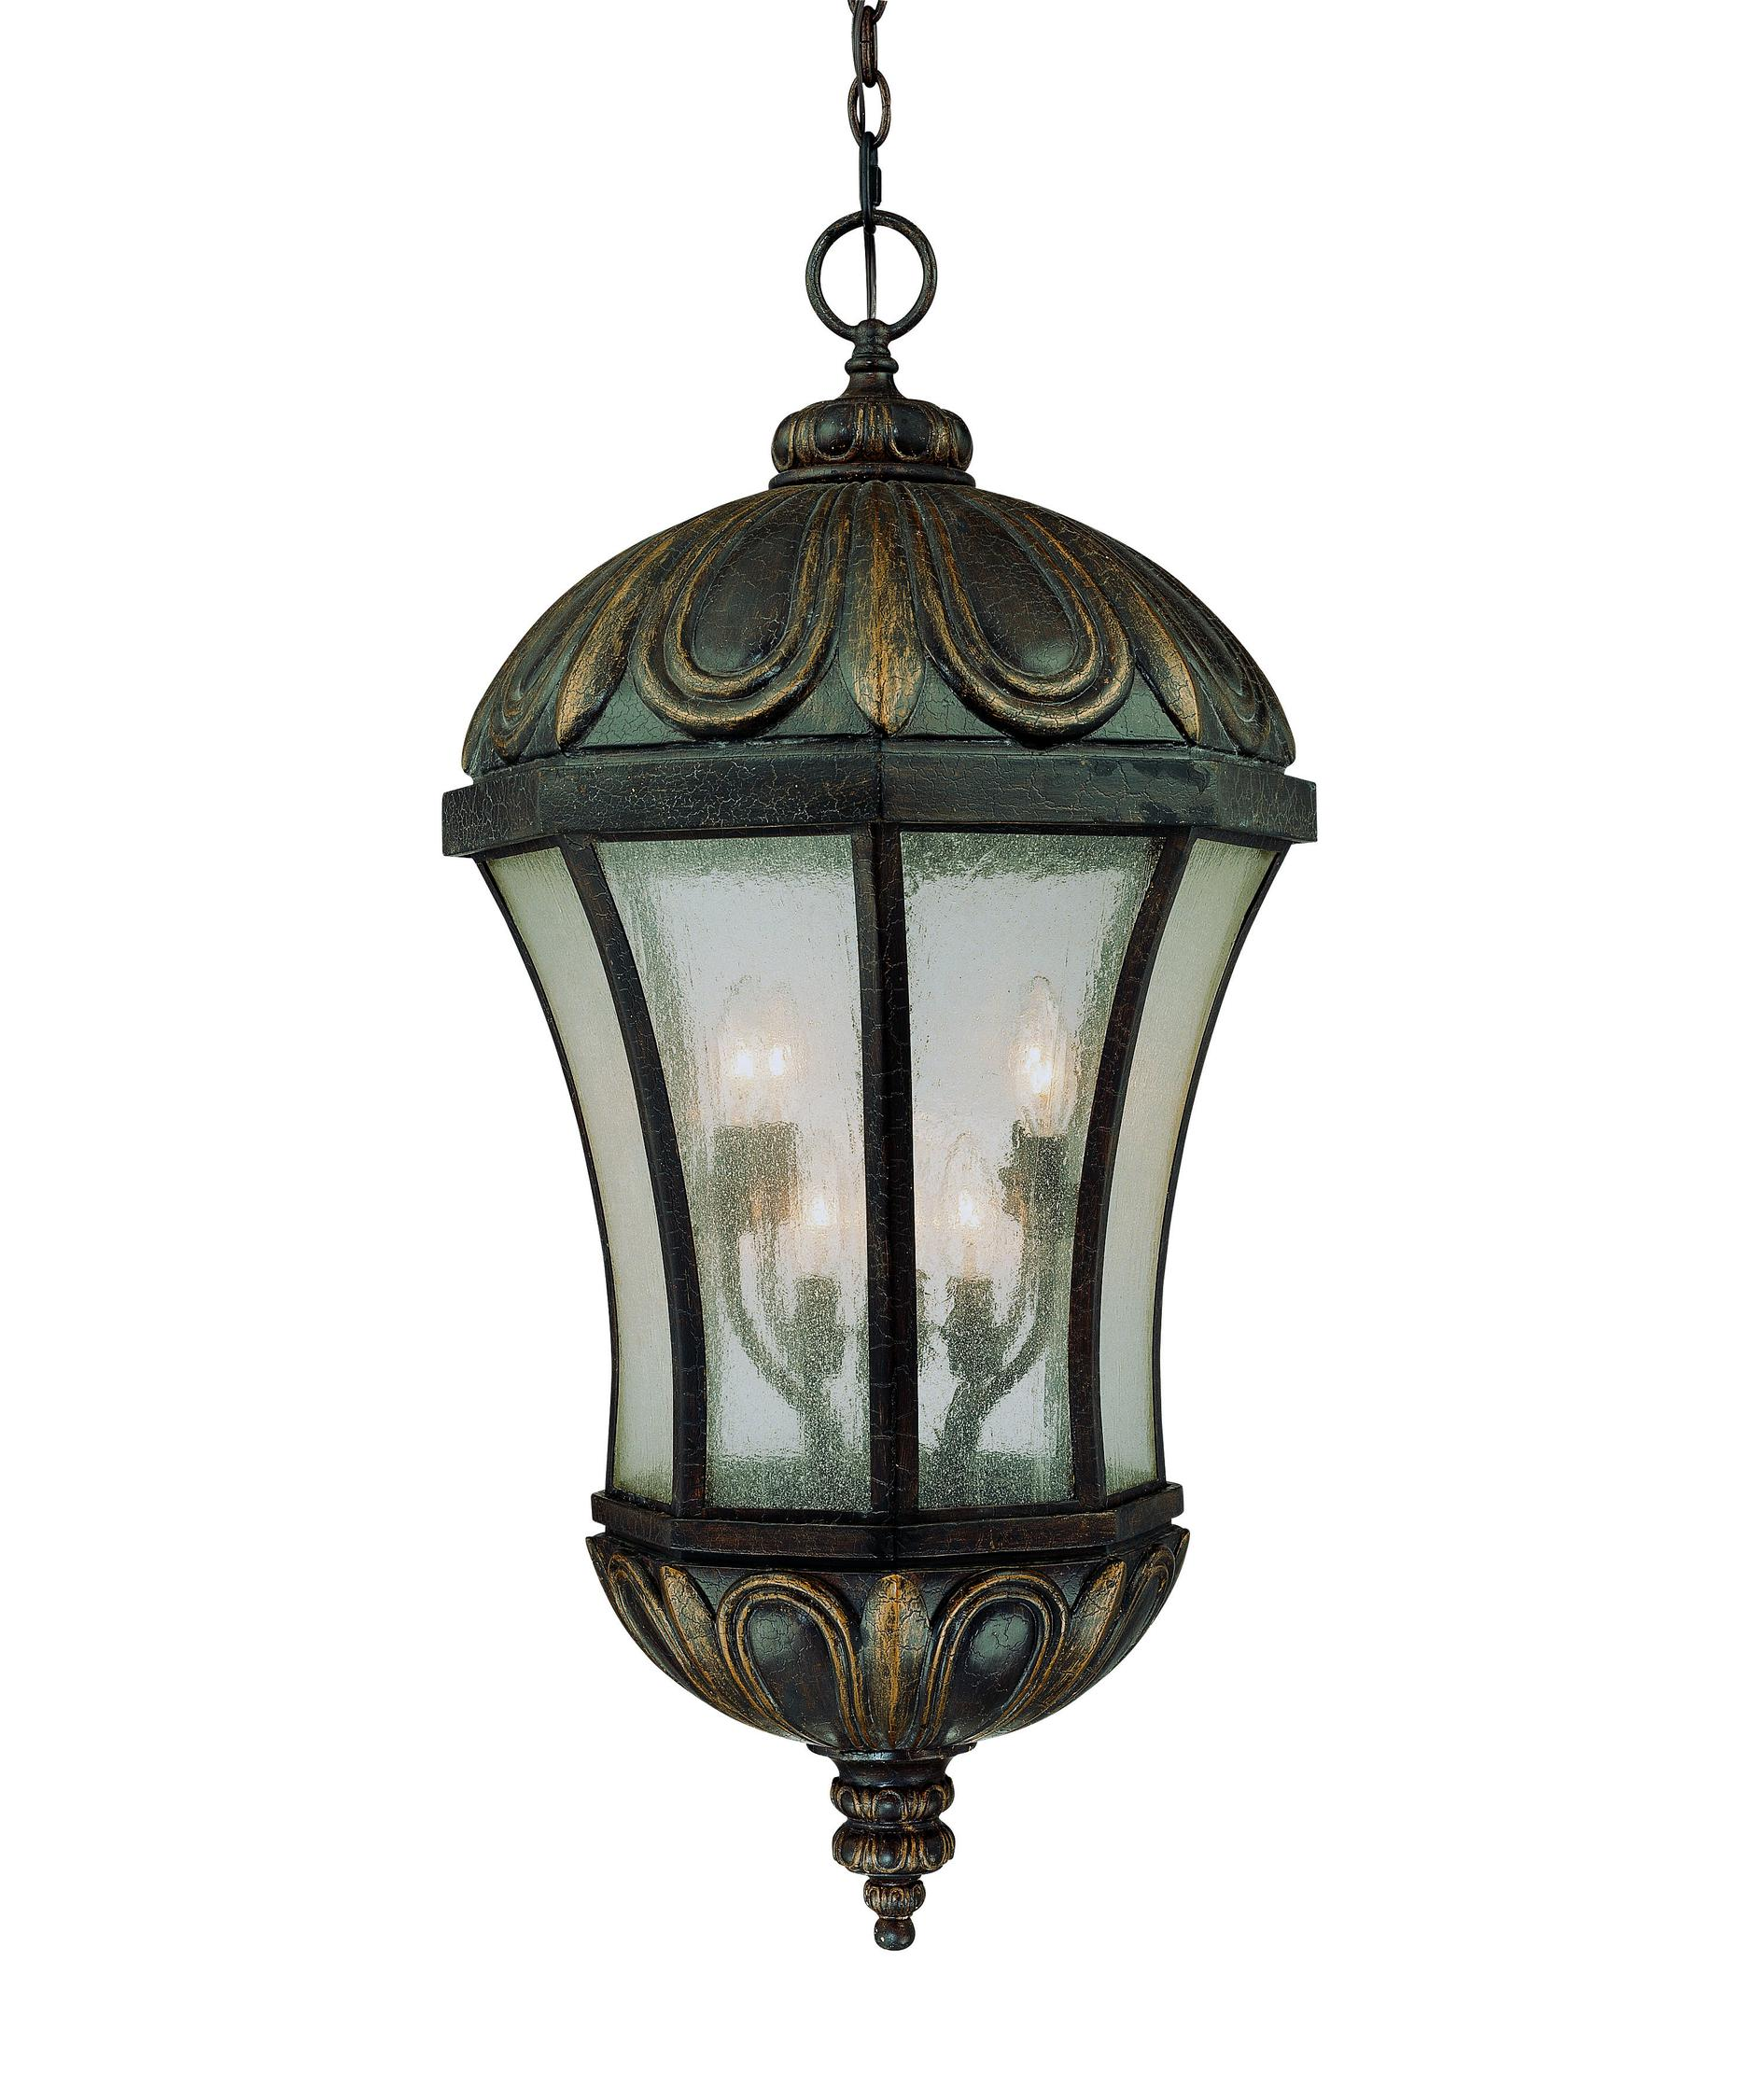 shown in old tuscan finish and pale cream seeded glass - Savoy Lighting